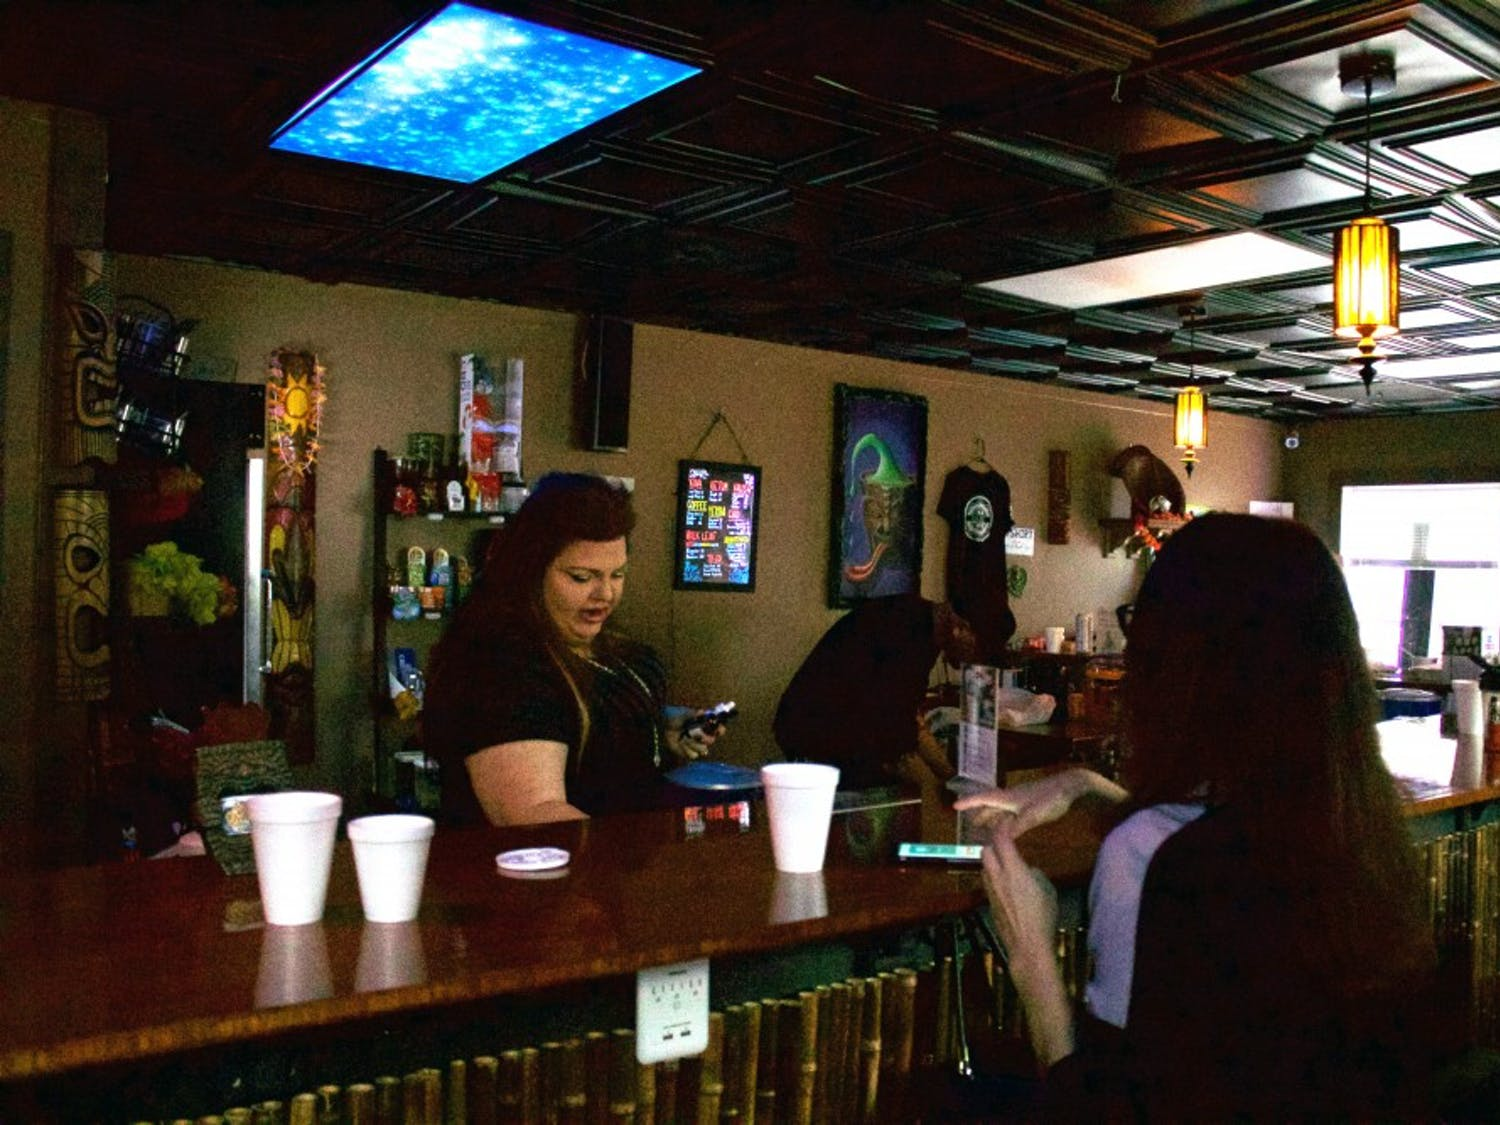 Elizabeth Gardner, owner of Krave in Carrboro, serves a customer the bar's signature Krush drink. Krush is made with kava and kratom plants, creating an earthy taste with relaxing effects.